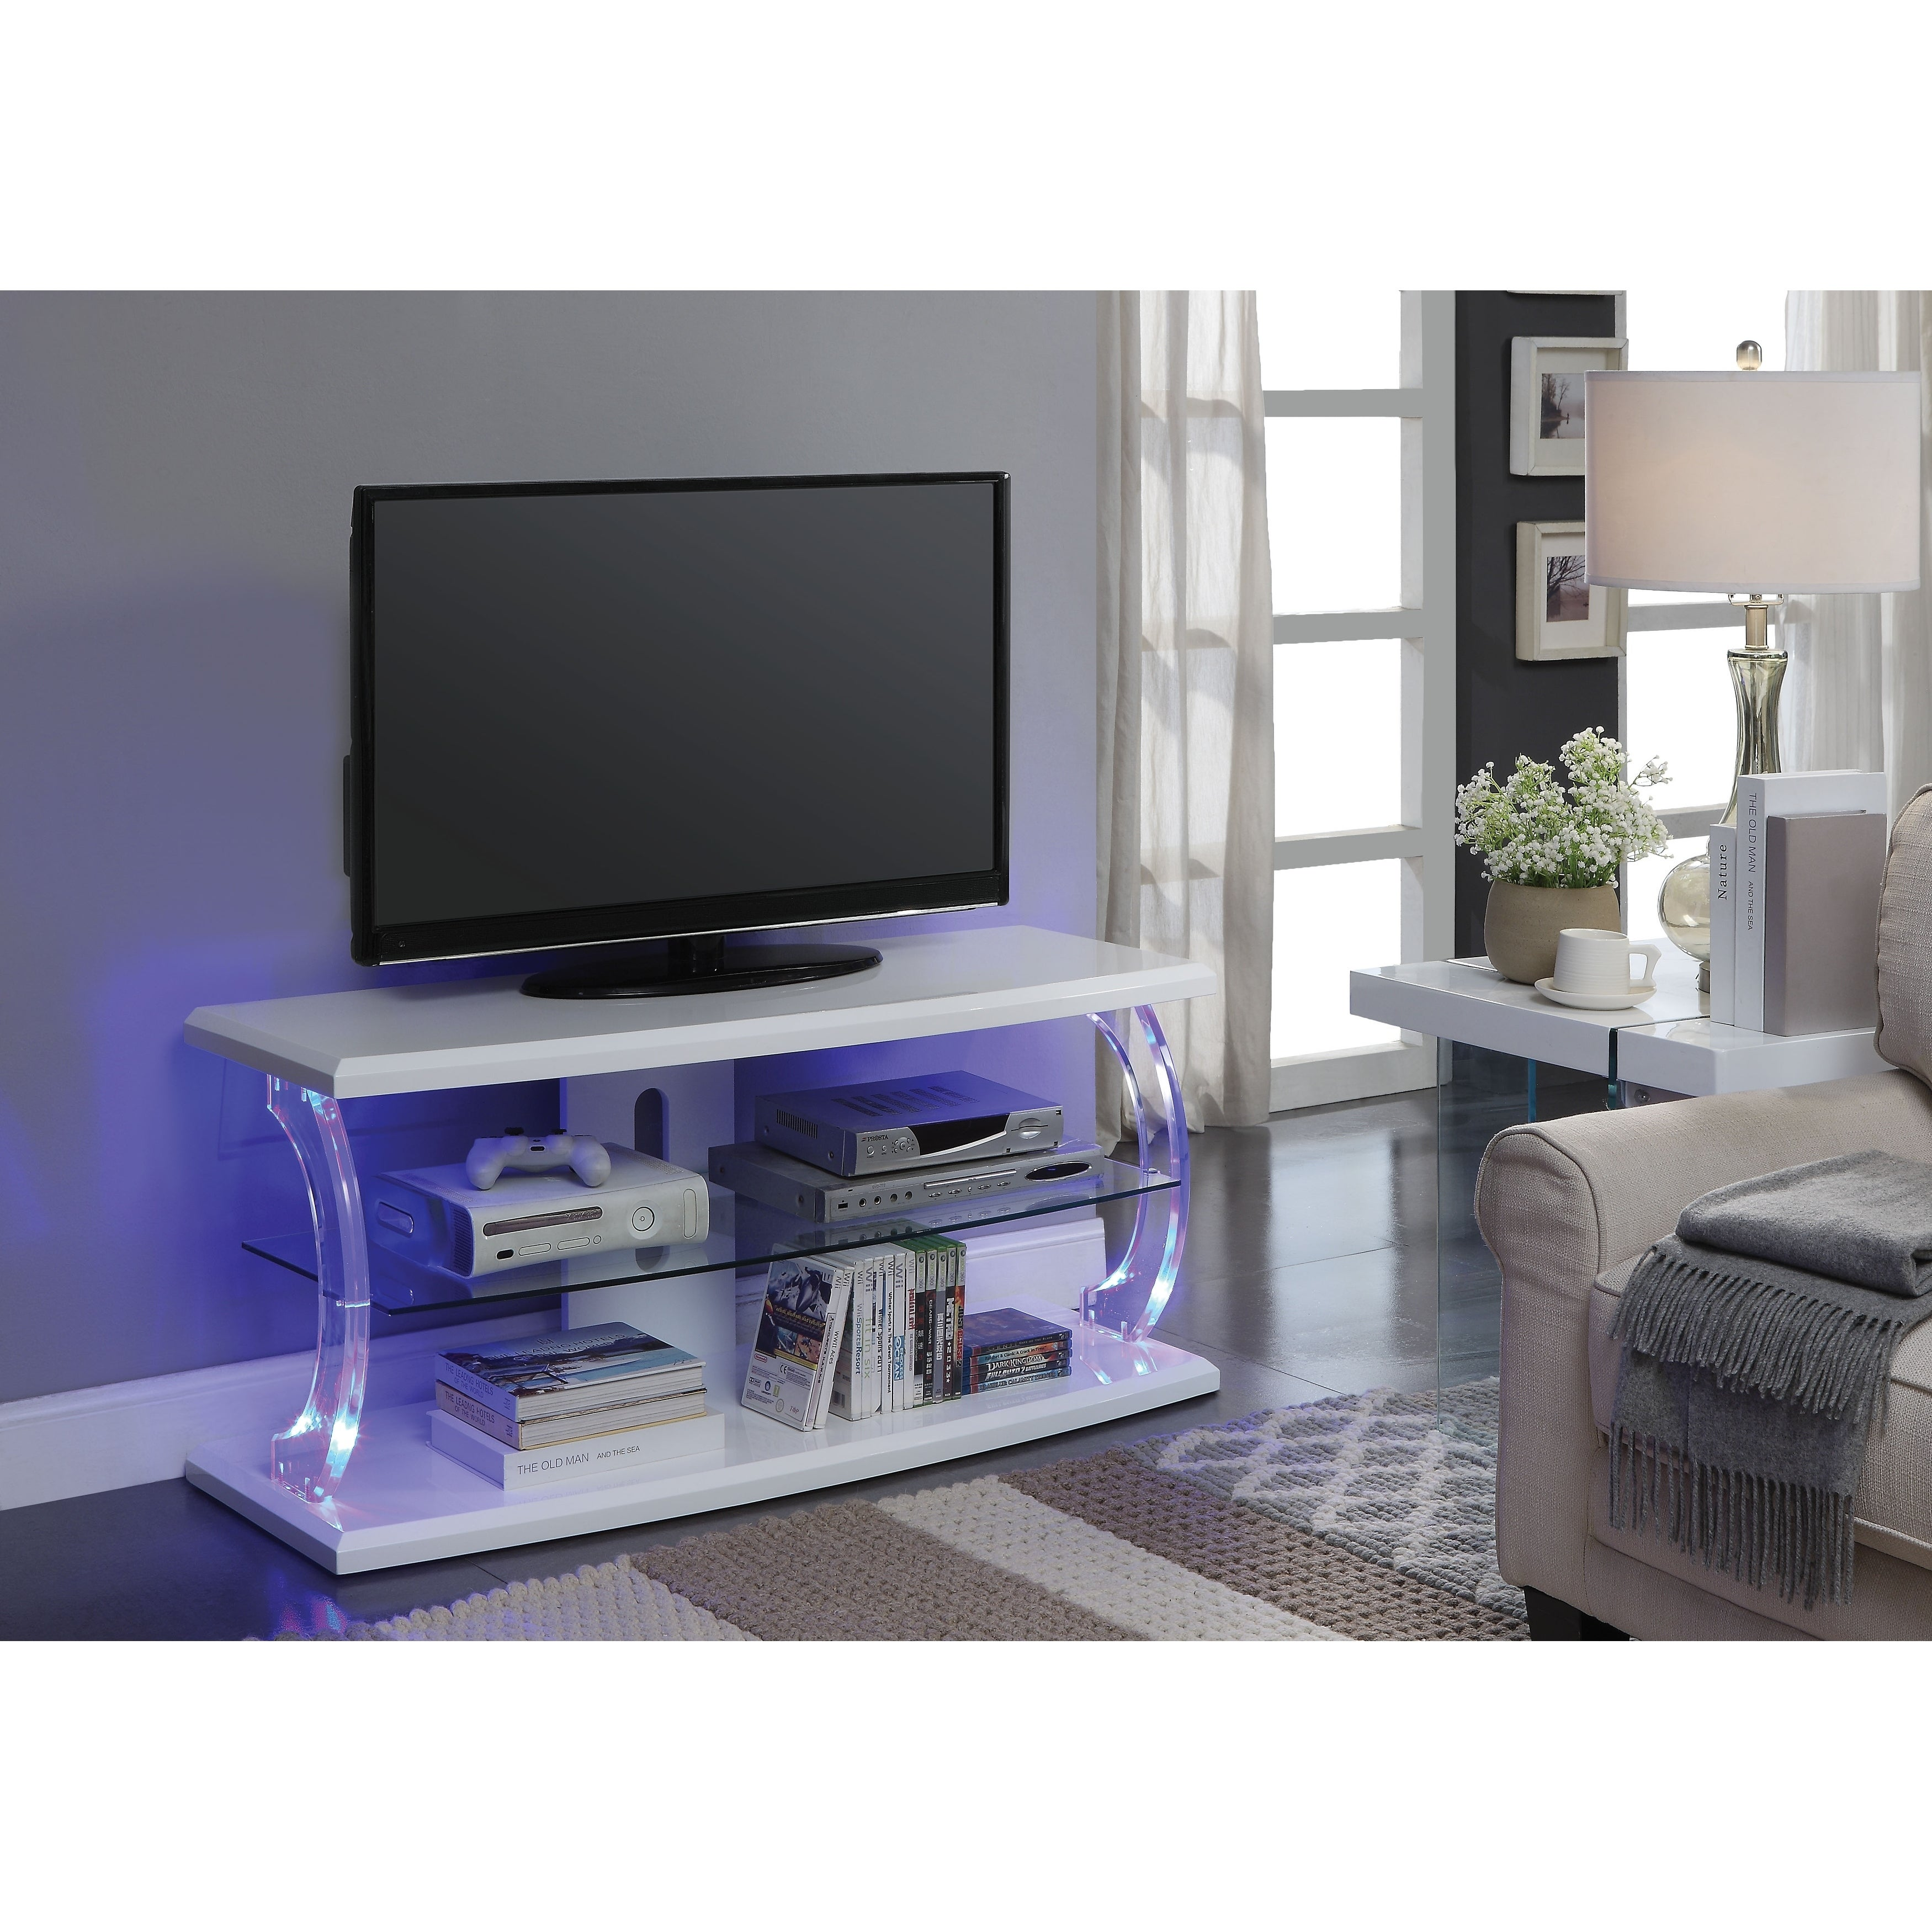 Modern Style Wooden Tv Stand With